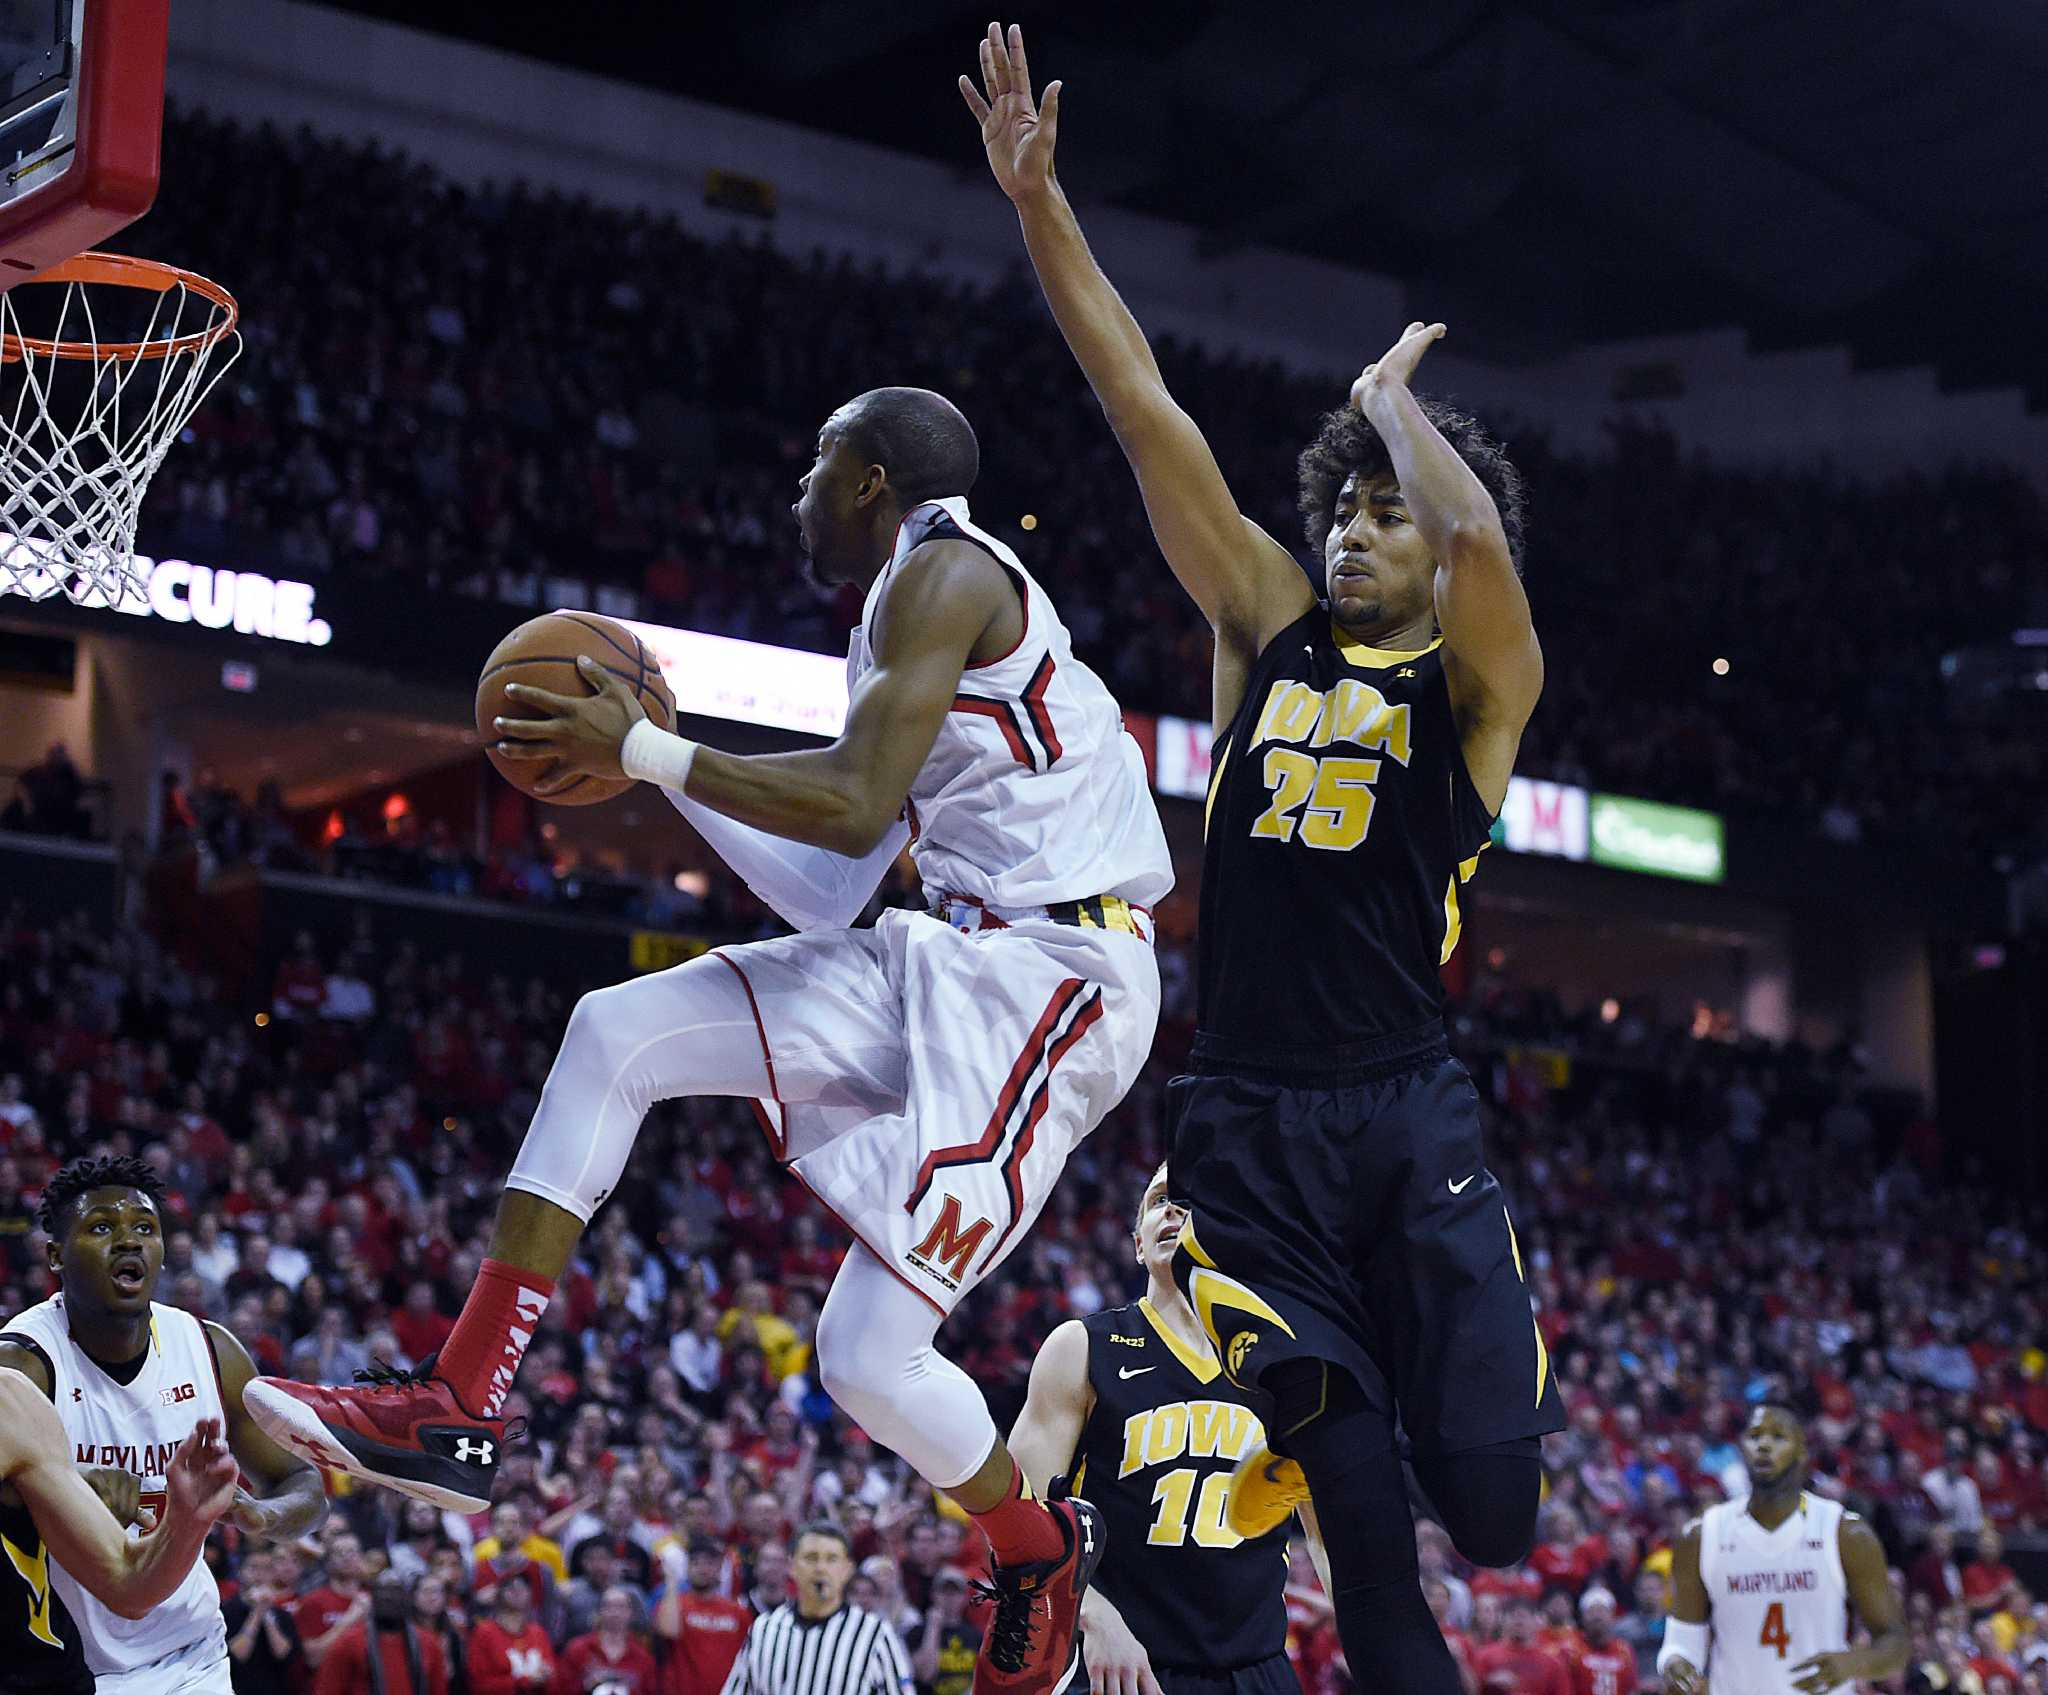 The AP delivers indepth college basketball game coverage highlights and the AP Top 25 Poll